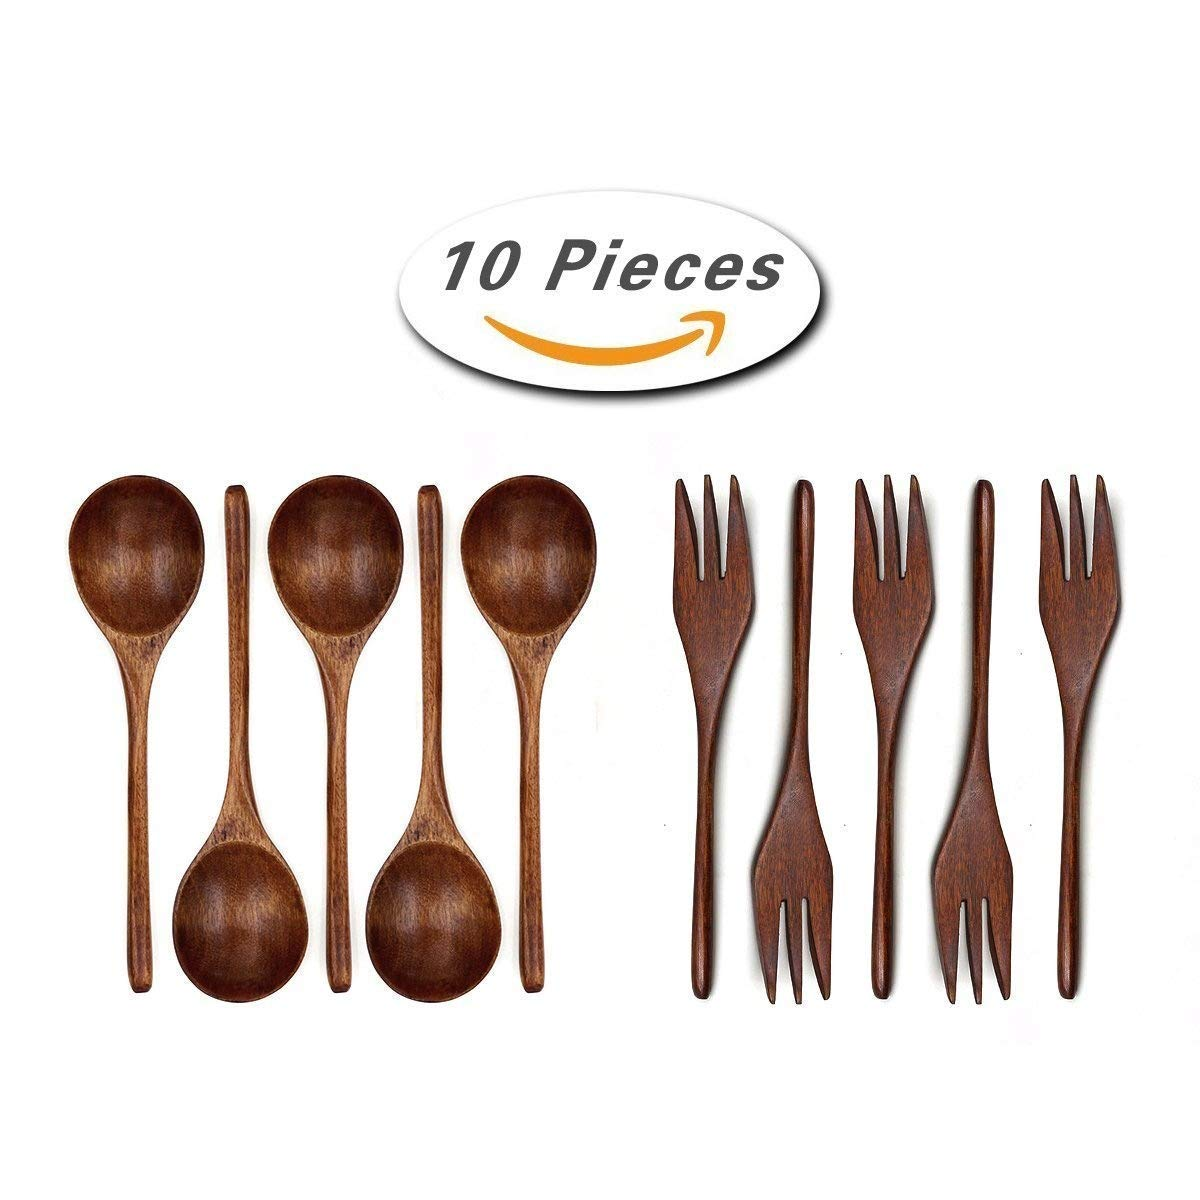 ADESUGATA 10 Pieces Wooden Spoon Fork Set,Natural Wooden Tableware Set Handmade Wooden Portable Long Handle Practical Spoon Forks Wood Tableware (Black)